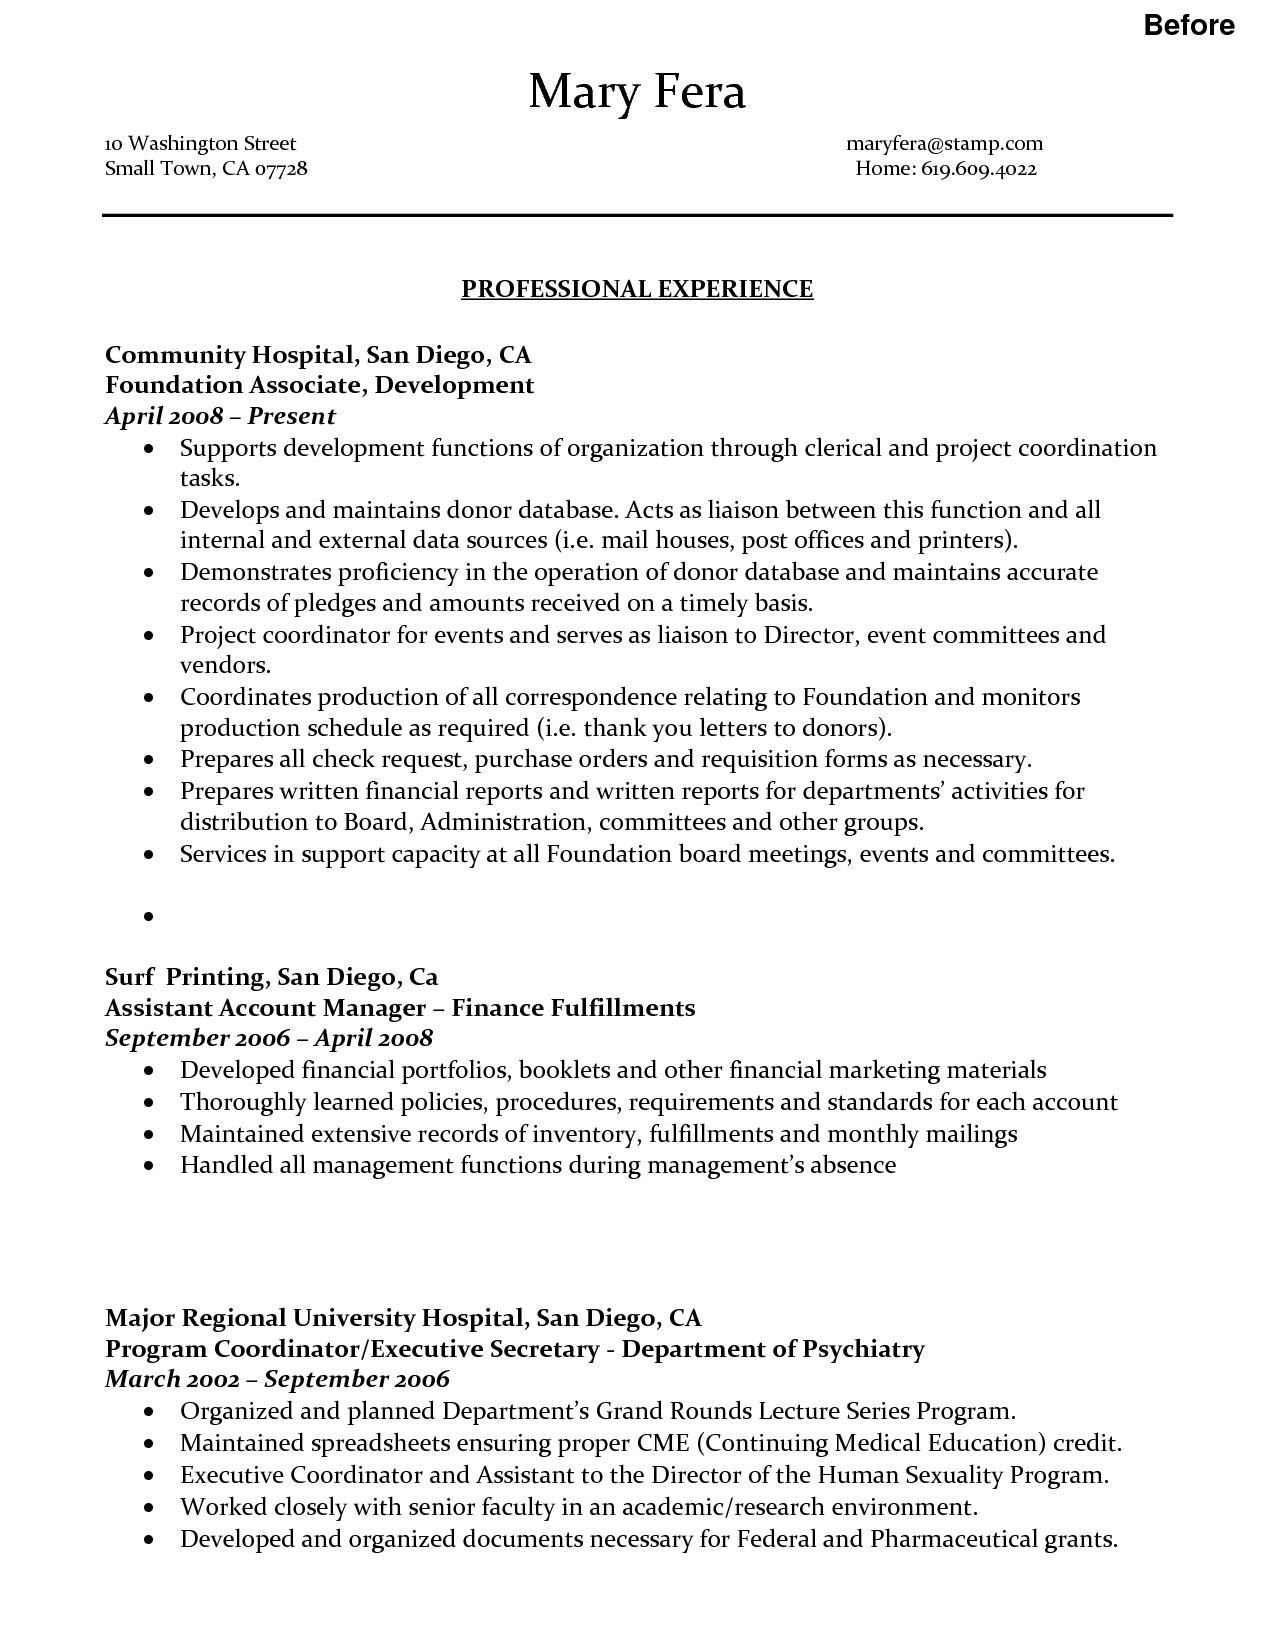 Sample Legal Resumes Resume Cover Letter Harvard Law For School